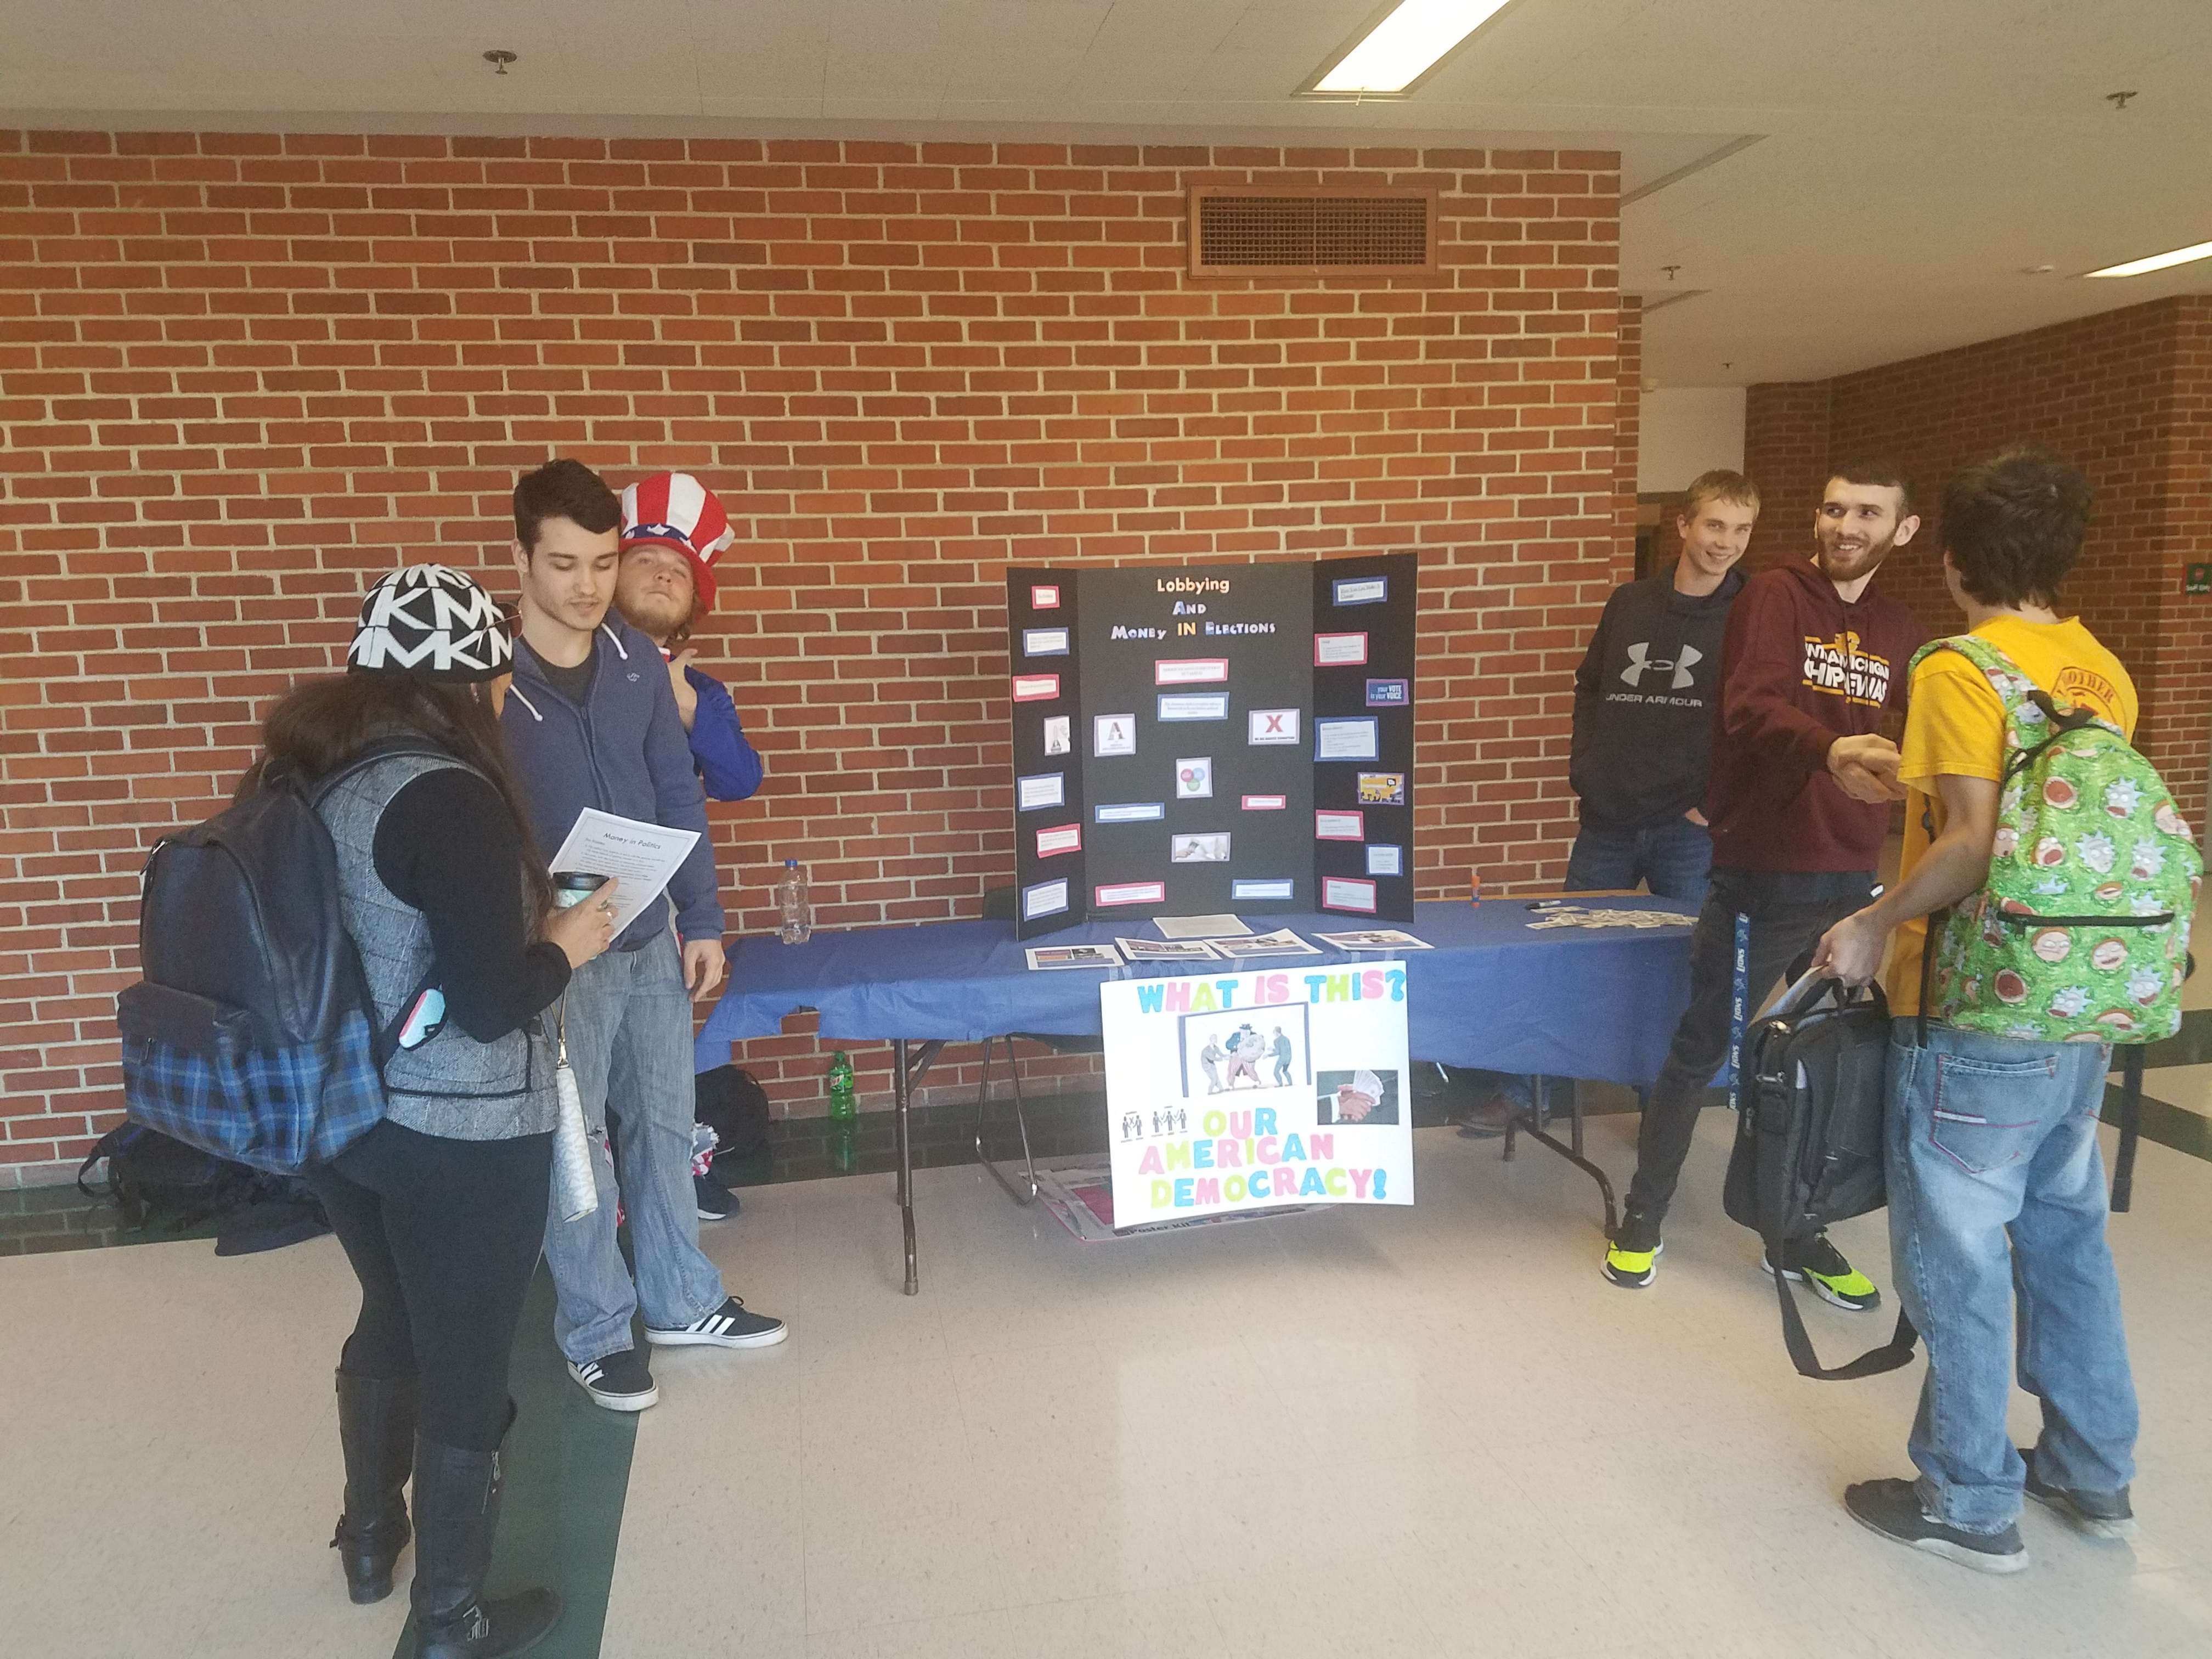 Six people around a change your world week display. One person is dressed as Uncle Sam.